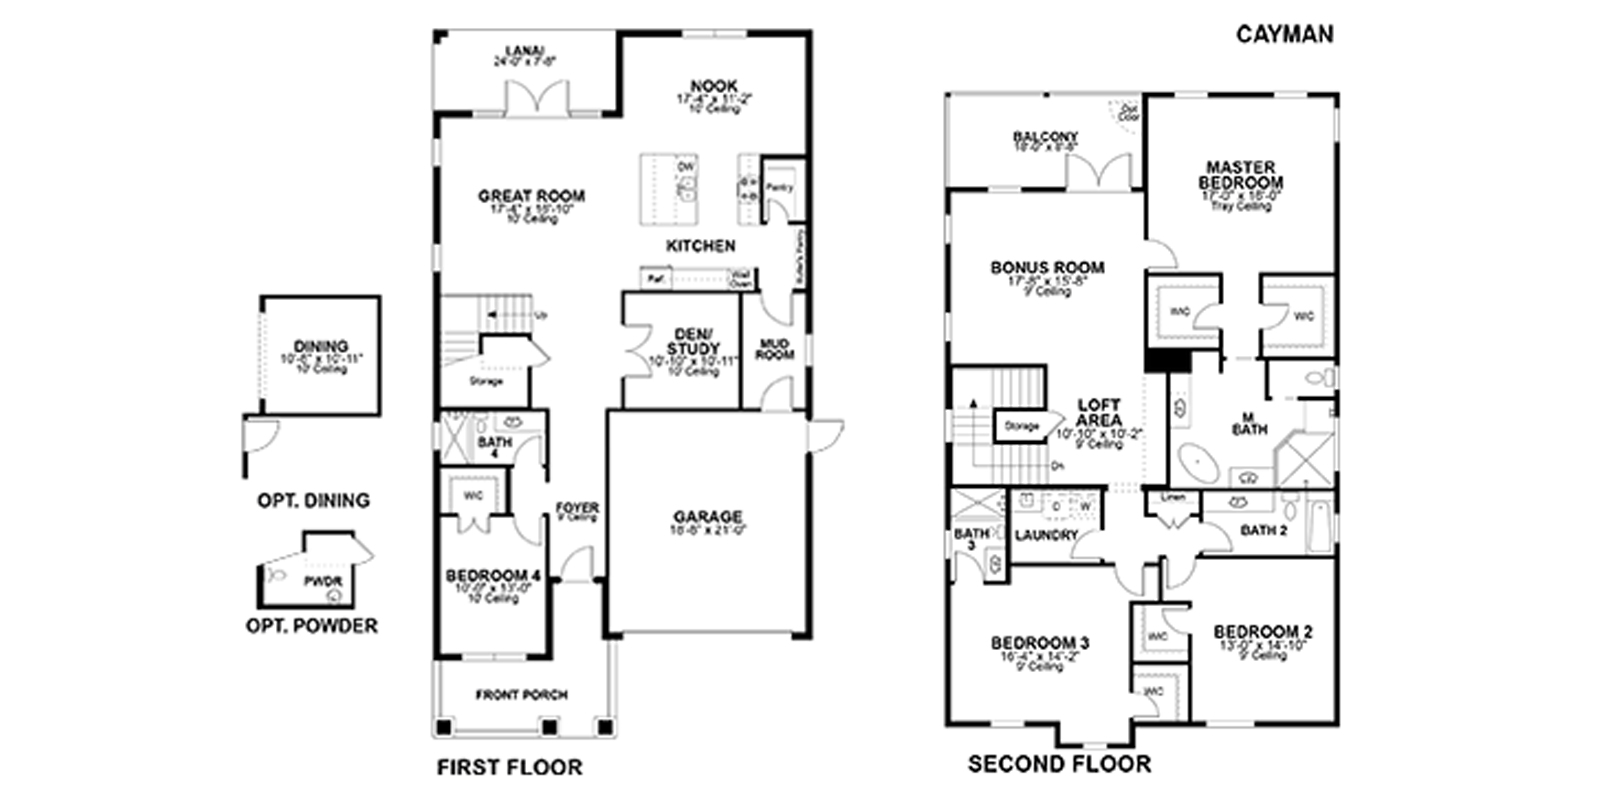 New Legacy Homes | Cayman Floorplan